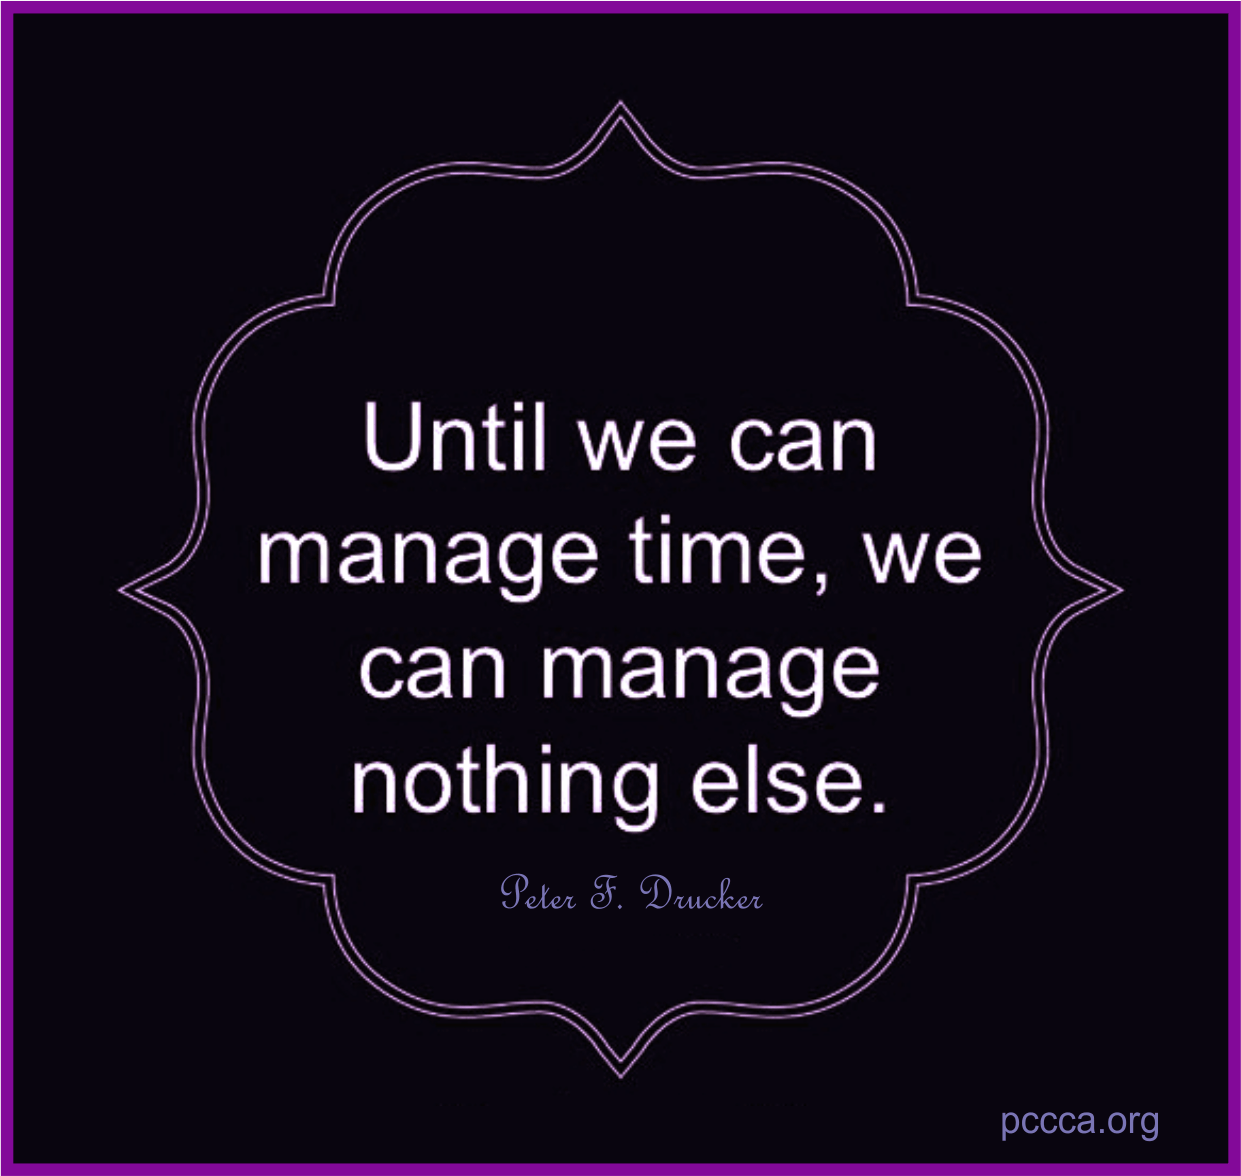 Until we can manage time, we can manage nothing else. quote https://pccca.org blog